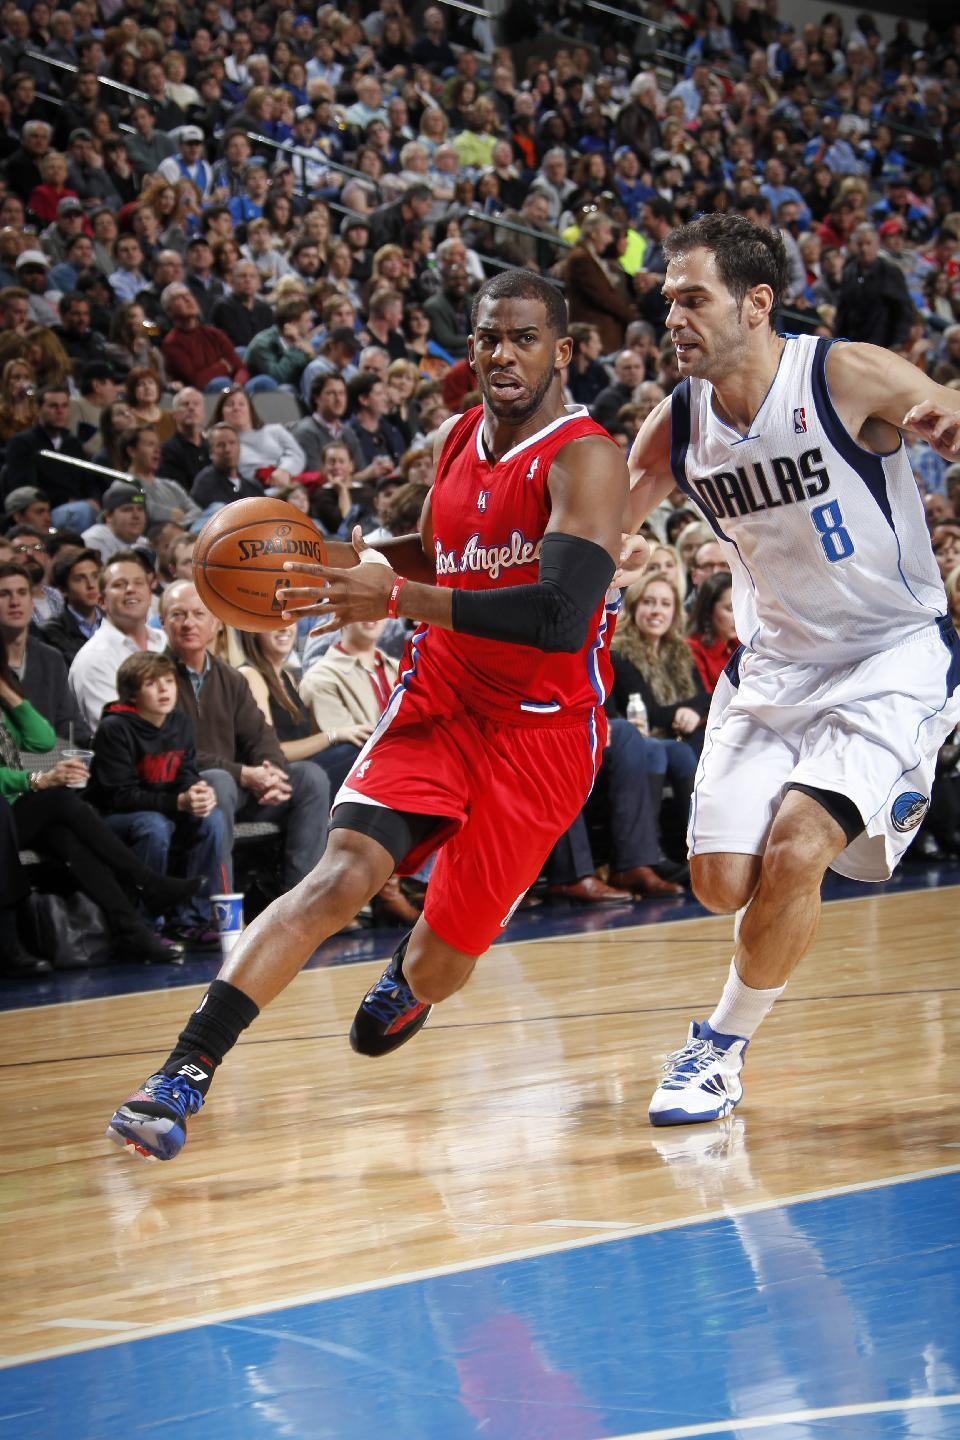 DALLAS, TX - JANUARY 3: Chris Paul #3 of the Los Angeles Clippers drives against Jose Calderon #8 of the Dallas Mavericks on January 3, 2014 at the American Airlines Center in Dallas, Texas. (Photo by Glenn James/NBAE via Getty Images)